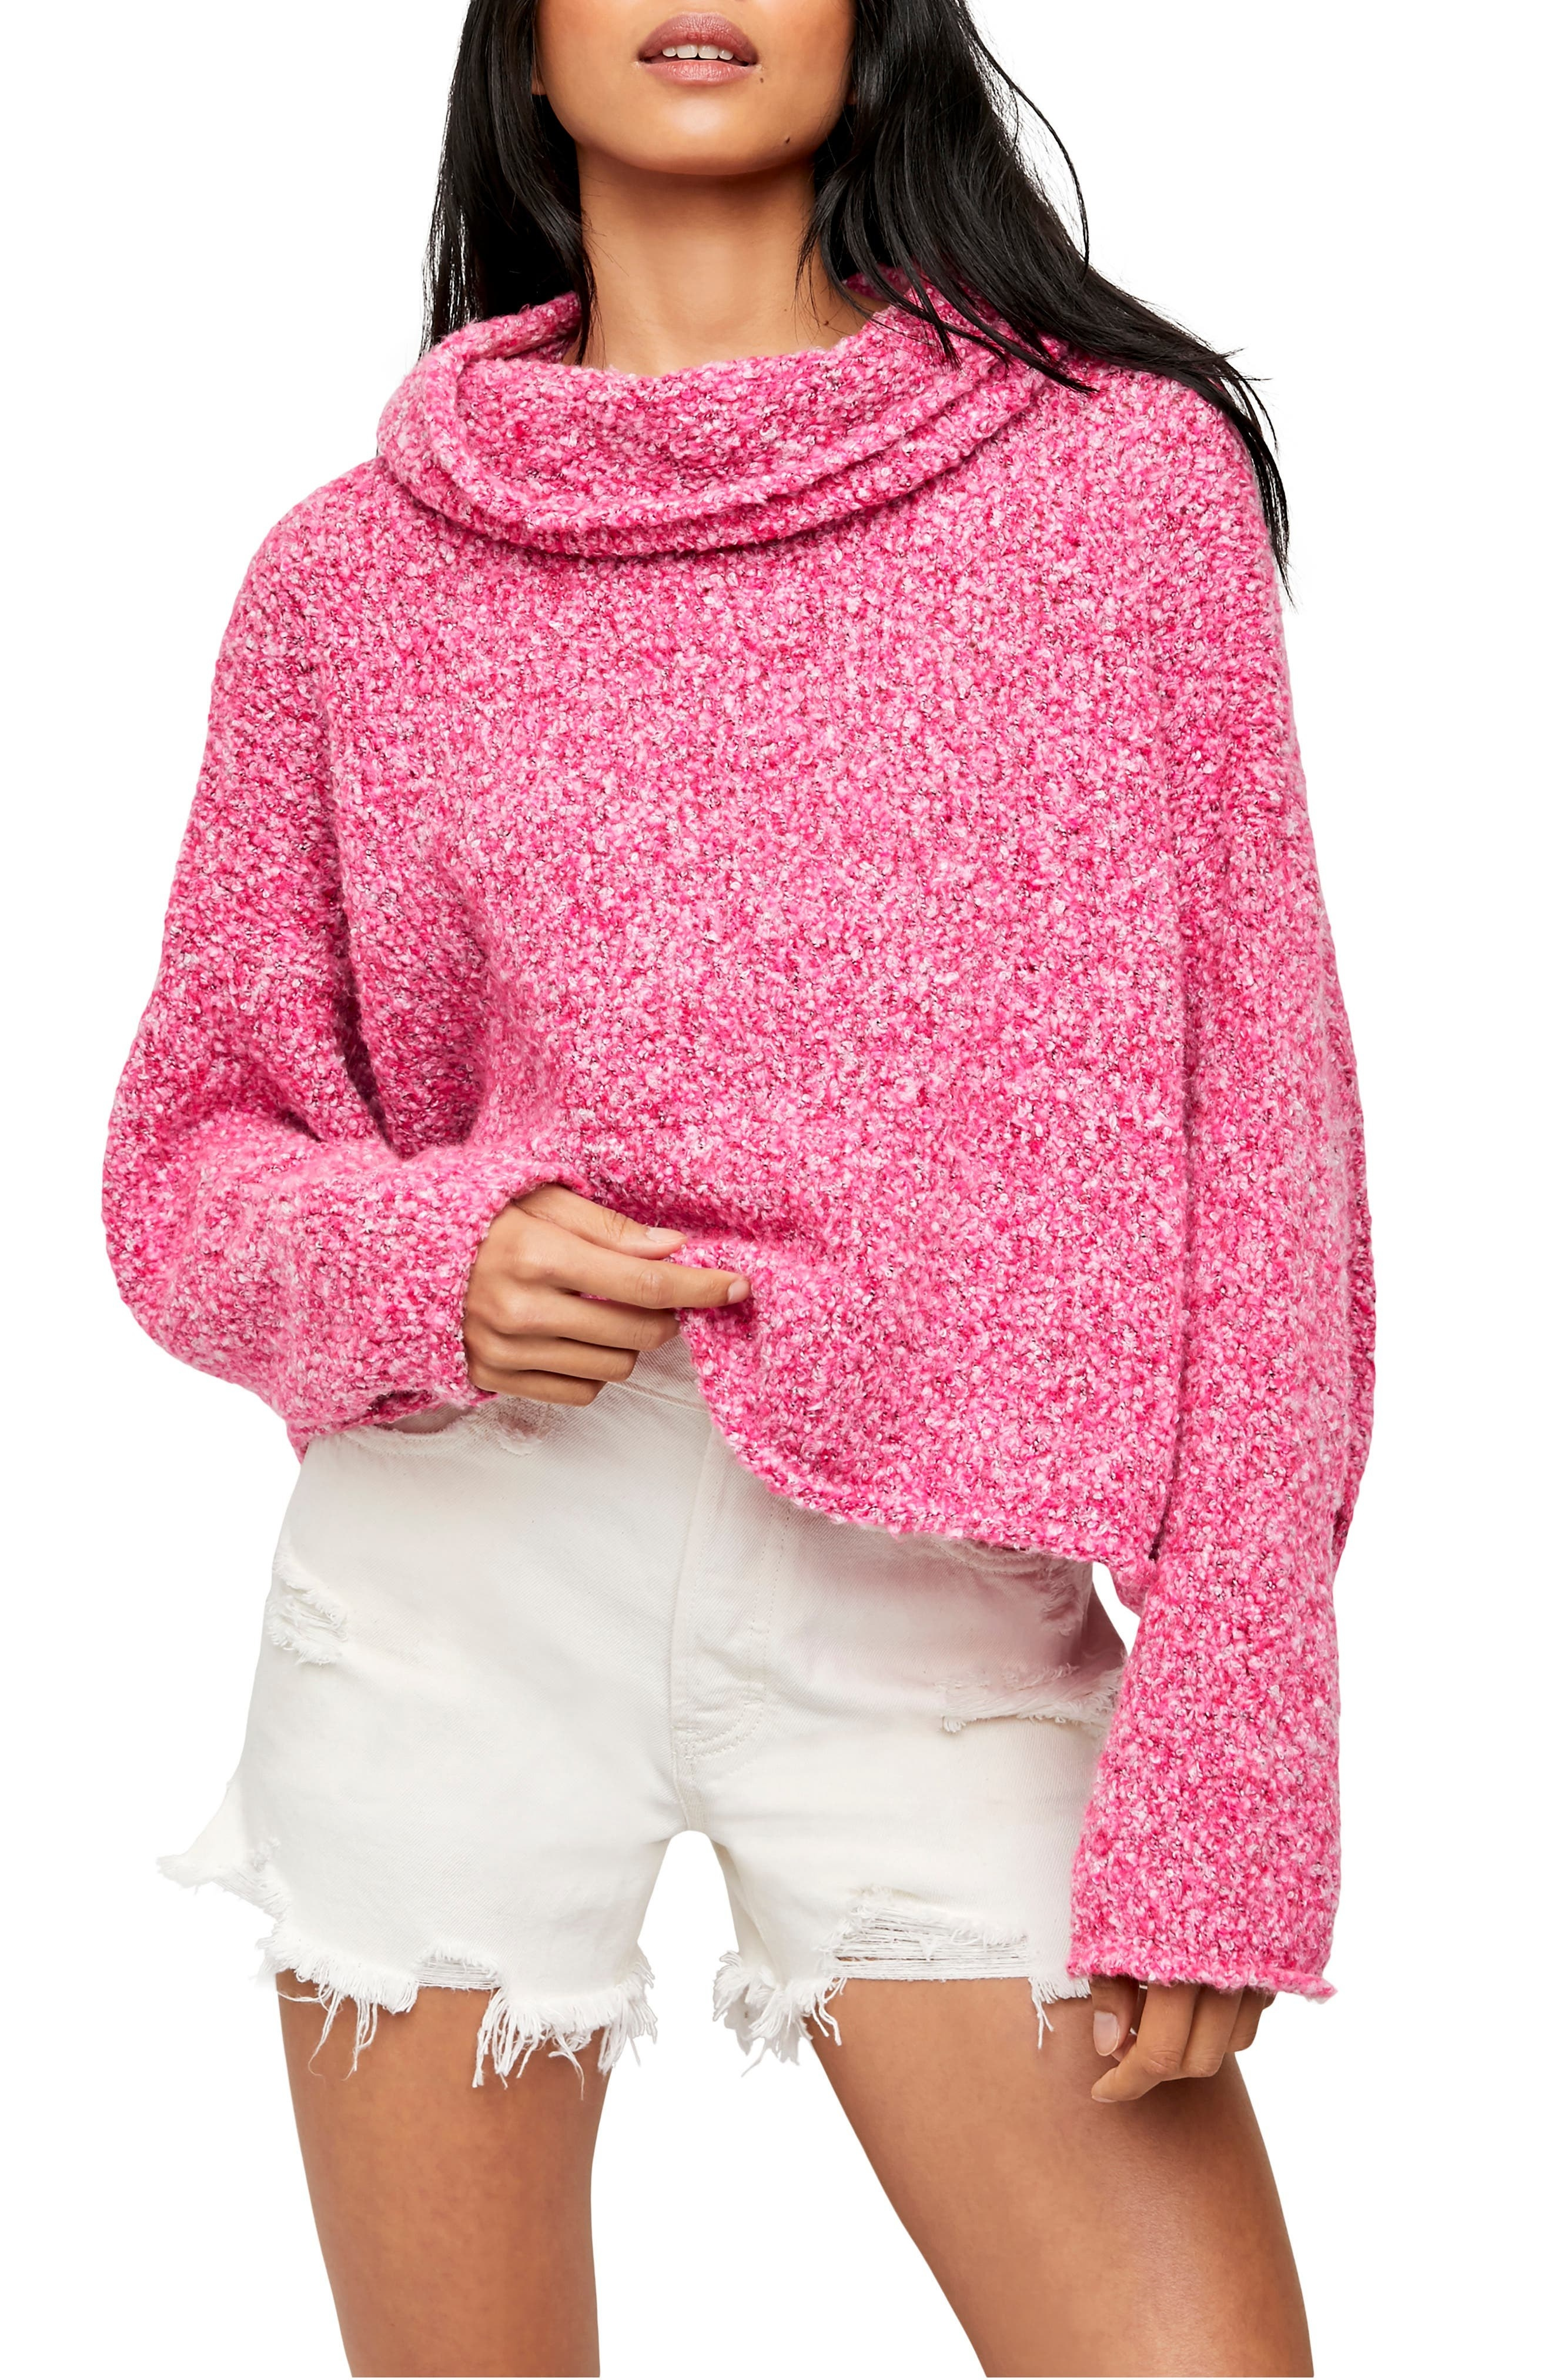 model wearing a pink cowl neck sweater and white cut-off jeans